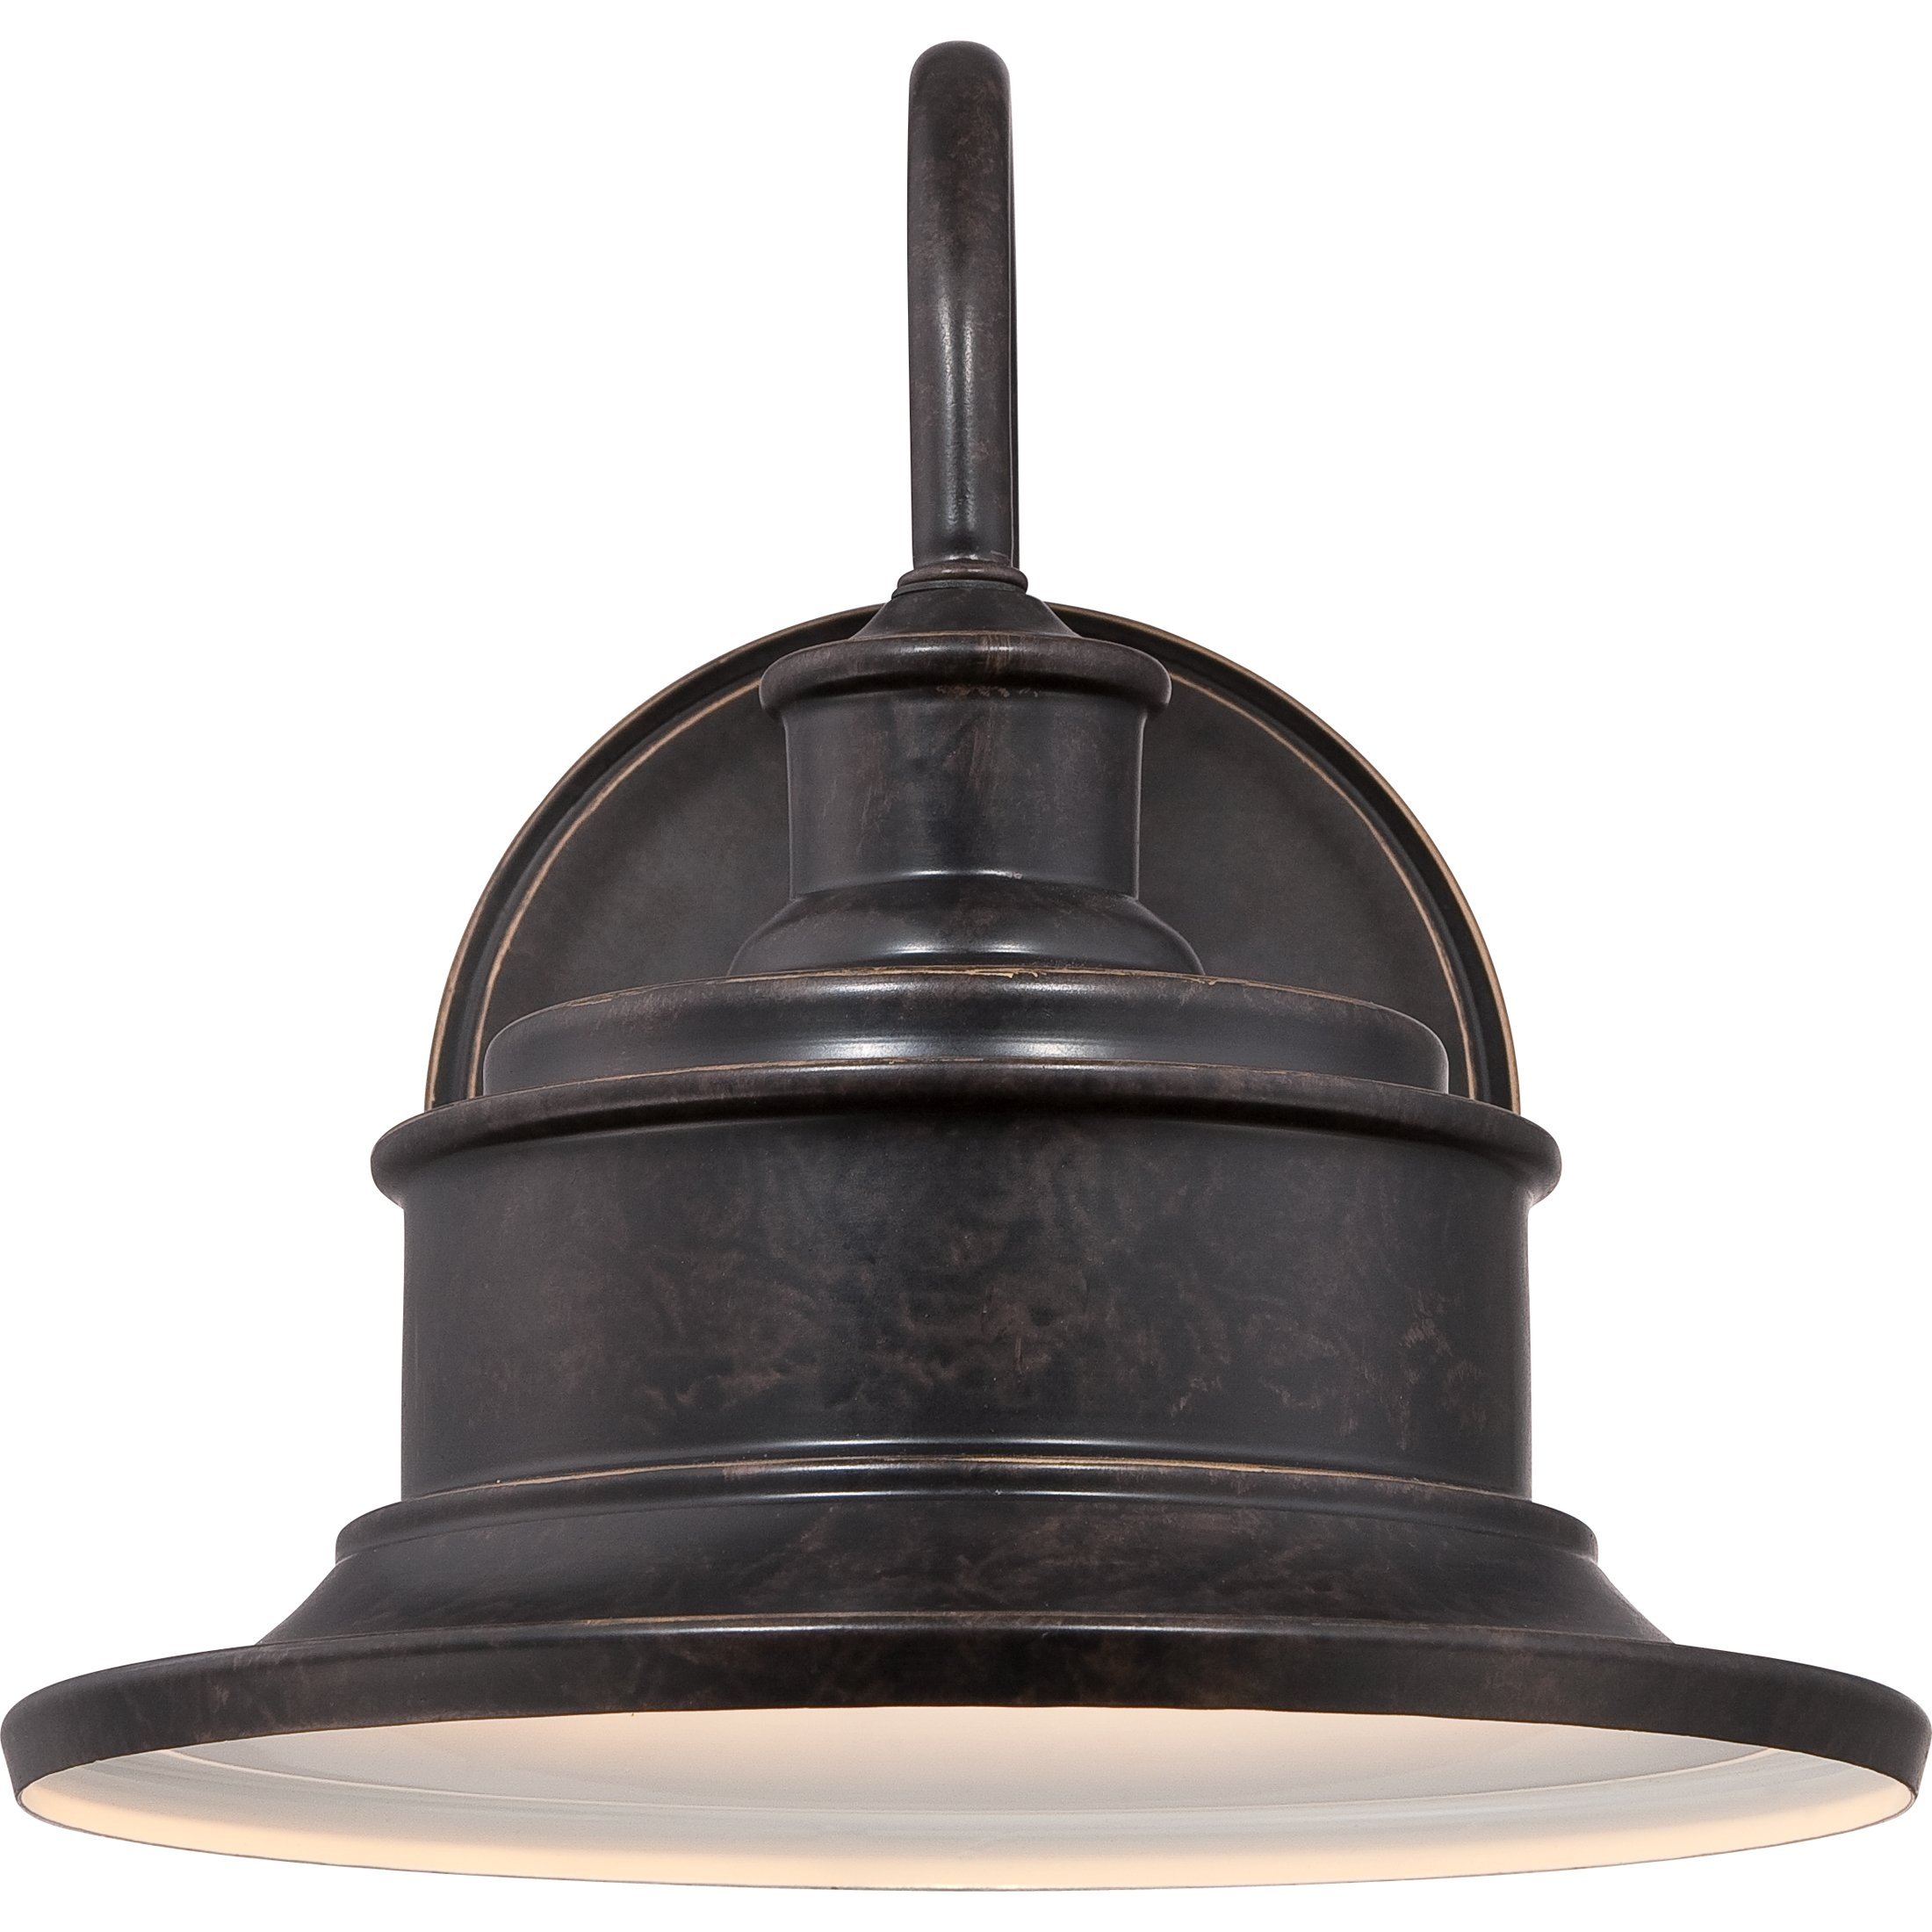 Quoizel SFD8411IB One Light Outdoor Wall Tabletop Lanterns Large Imperial Bronze by Quoizel (Image #3)